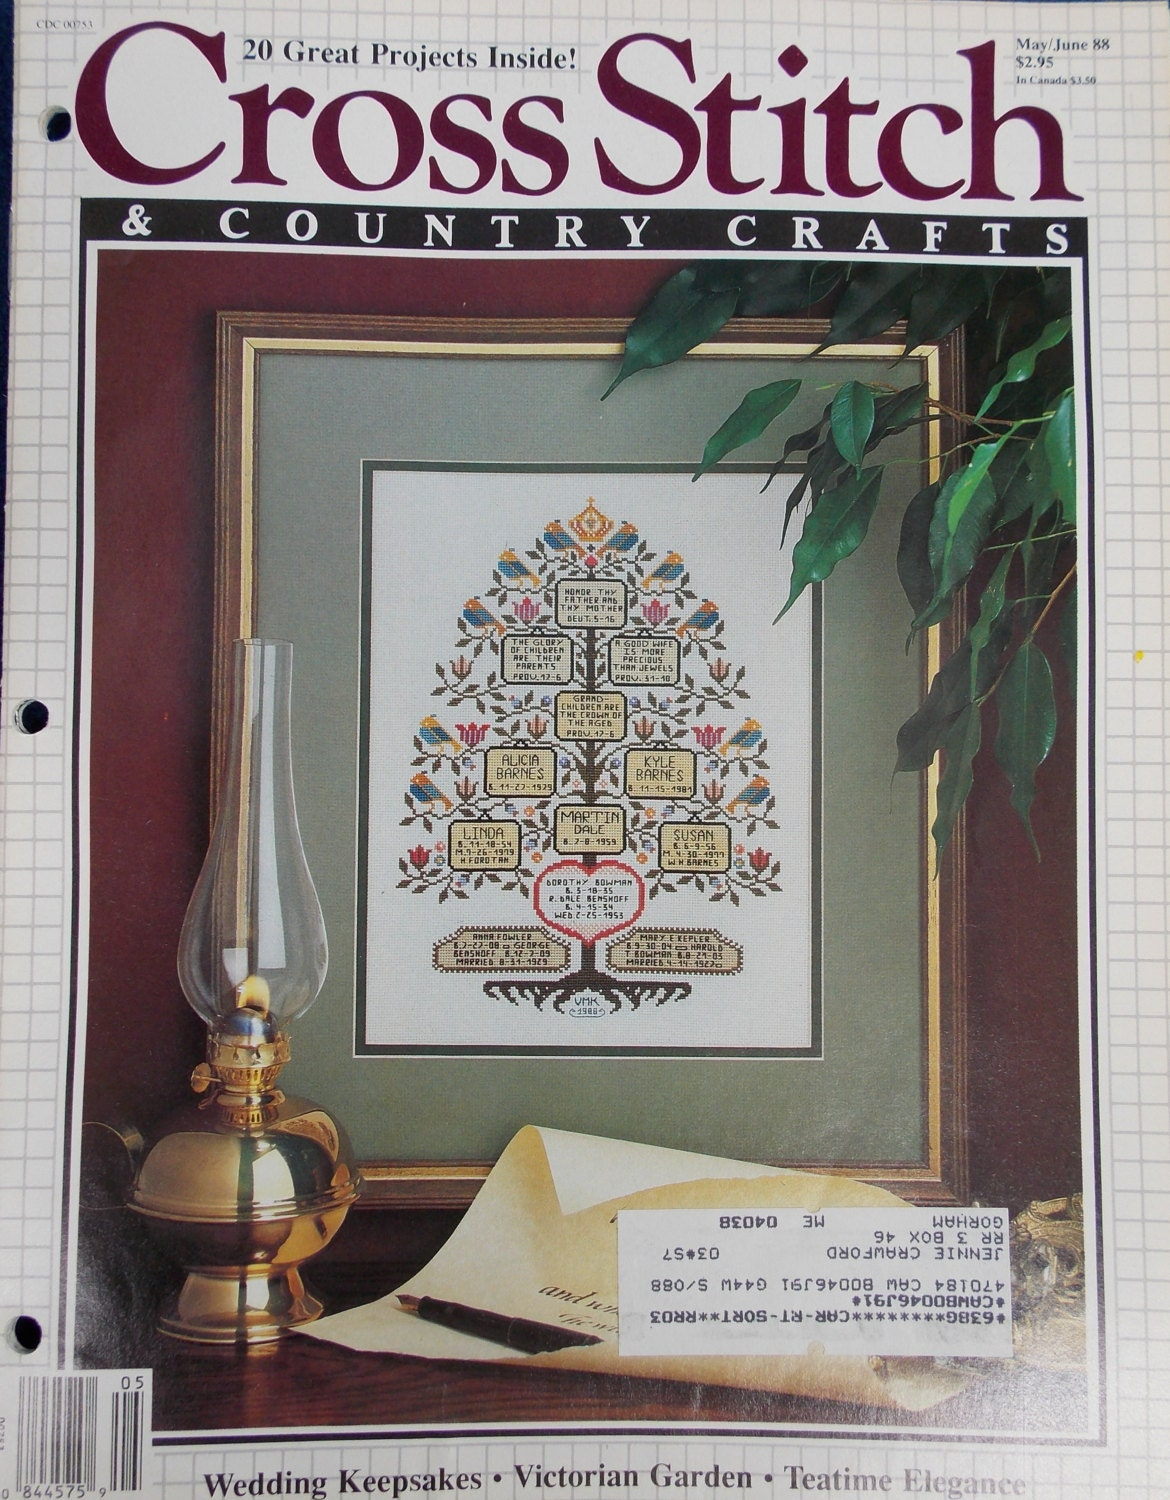 Cross stitch and country crafts magazine back issues - 1988 Cross Stitch And Country Crafts Magazine 6 Vintage Issues Sold By Grammiejennie 10 99